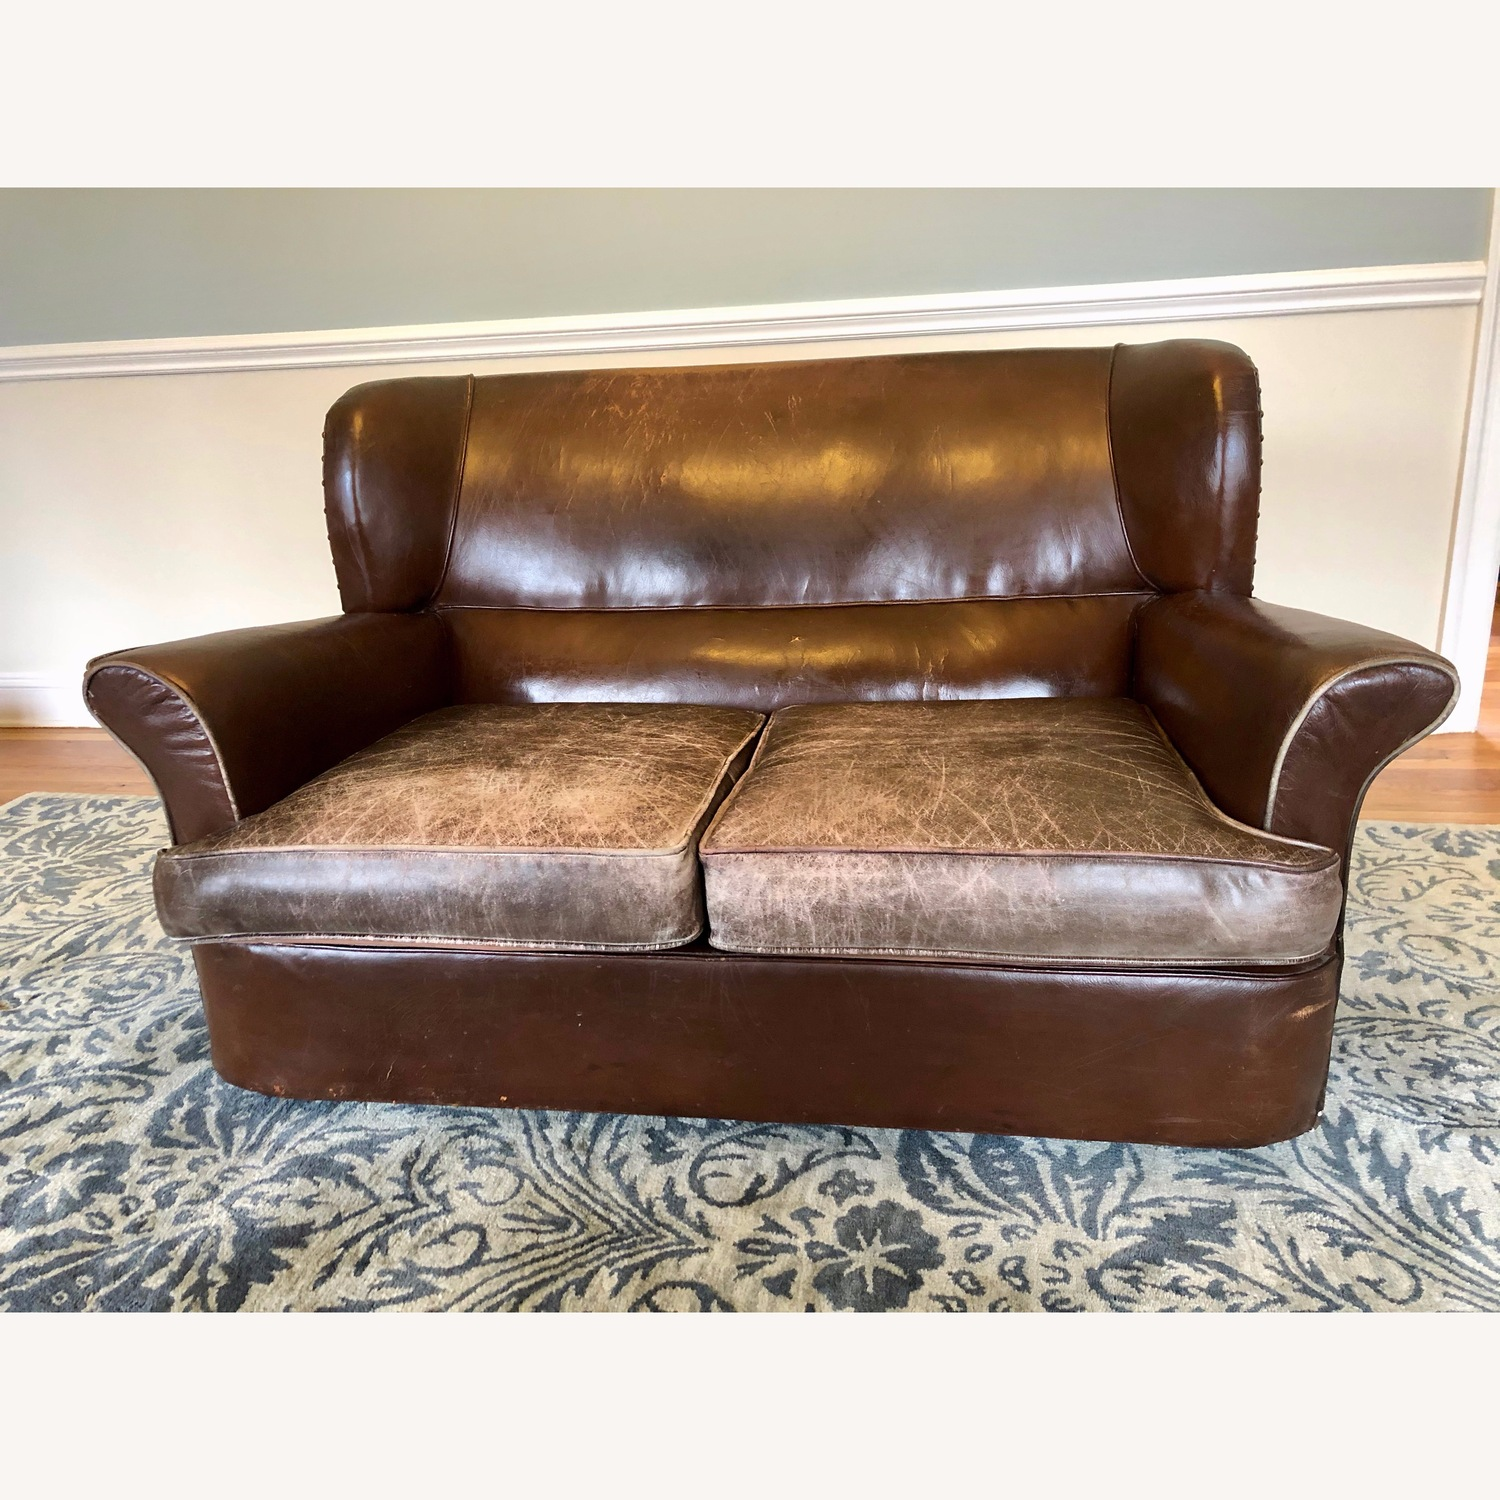 Vintage 1920s French Leather Sofa - image-1